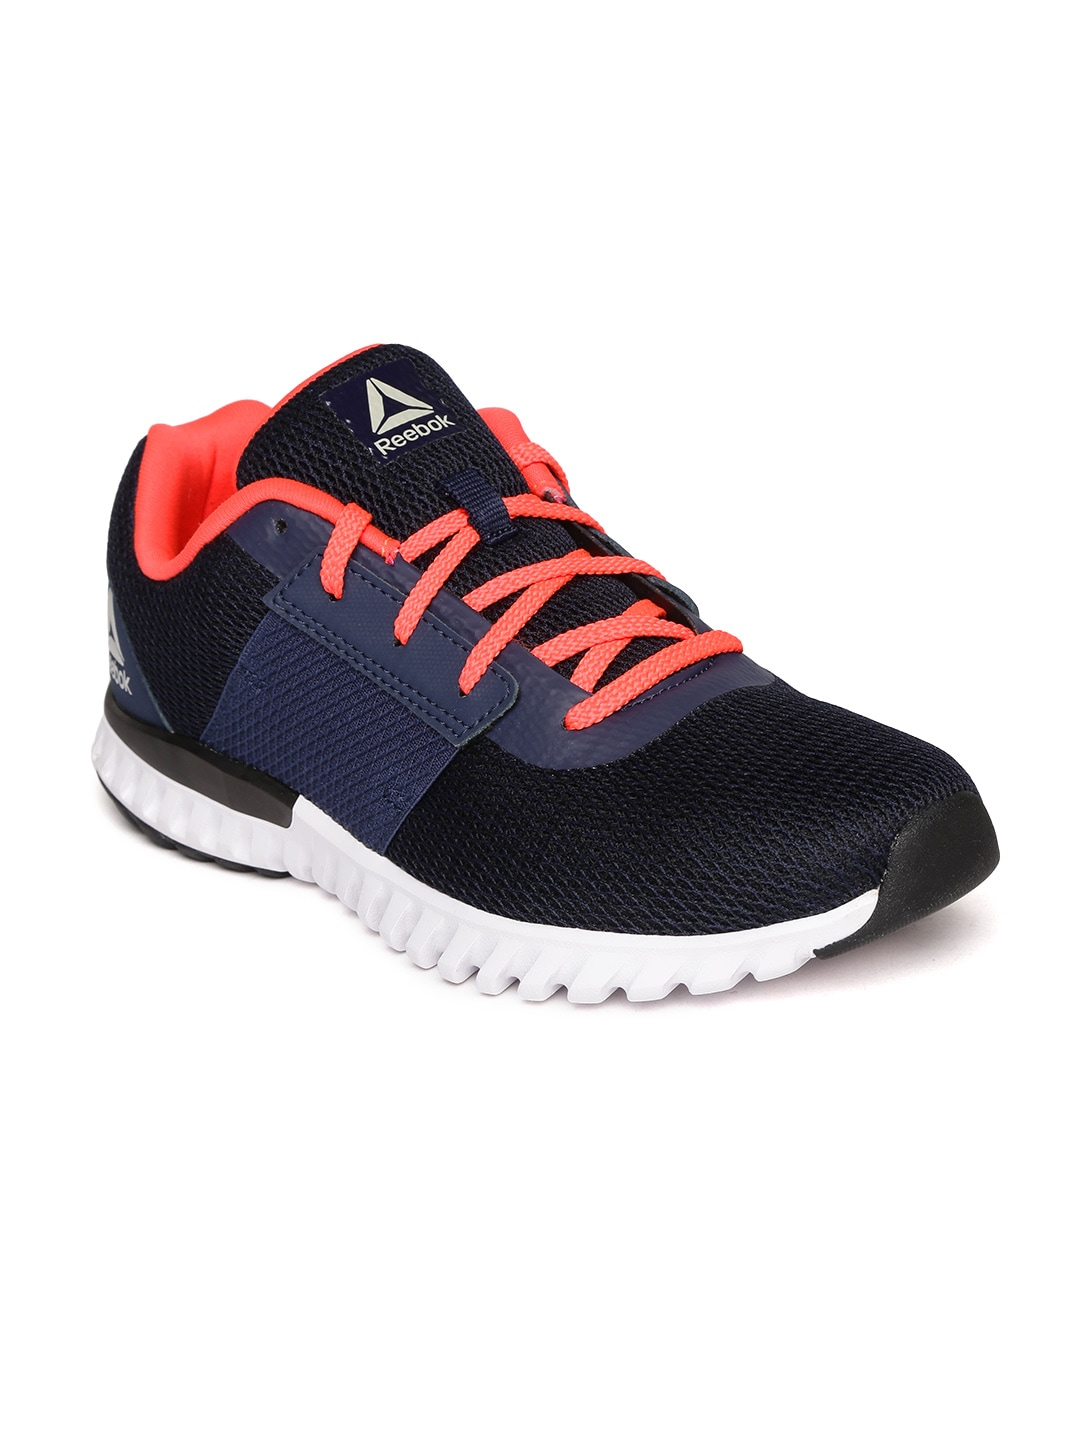 Athletic Shoes Hearty Womens Reebok Running Trainers Size 4